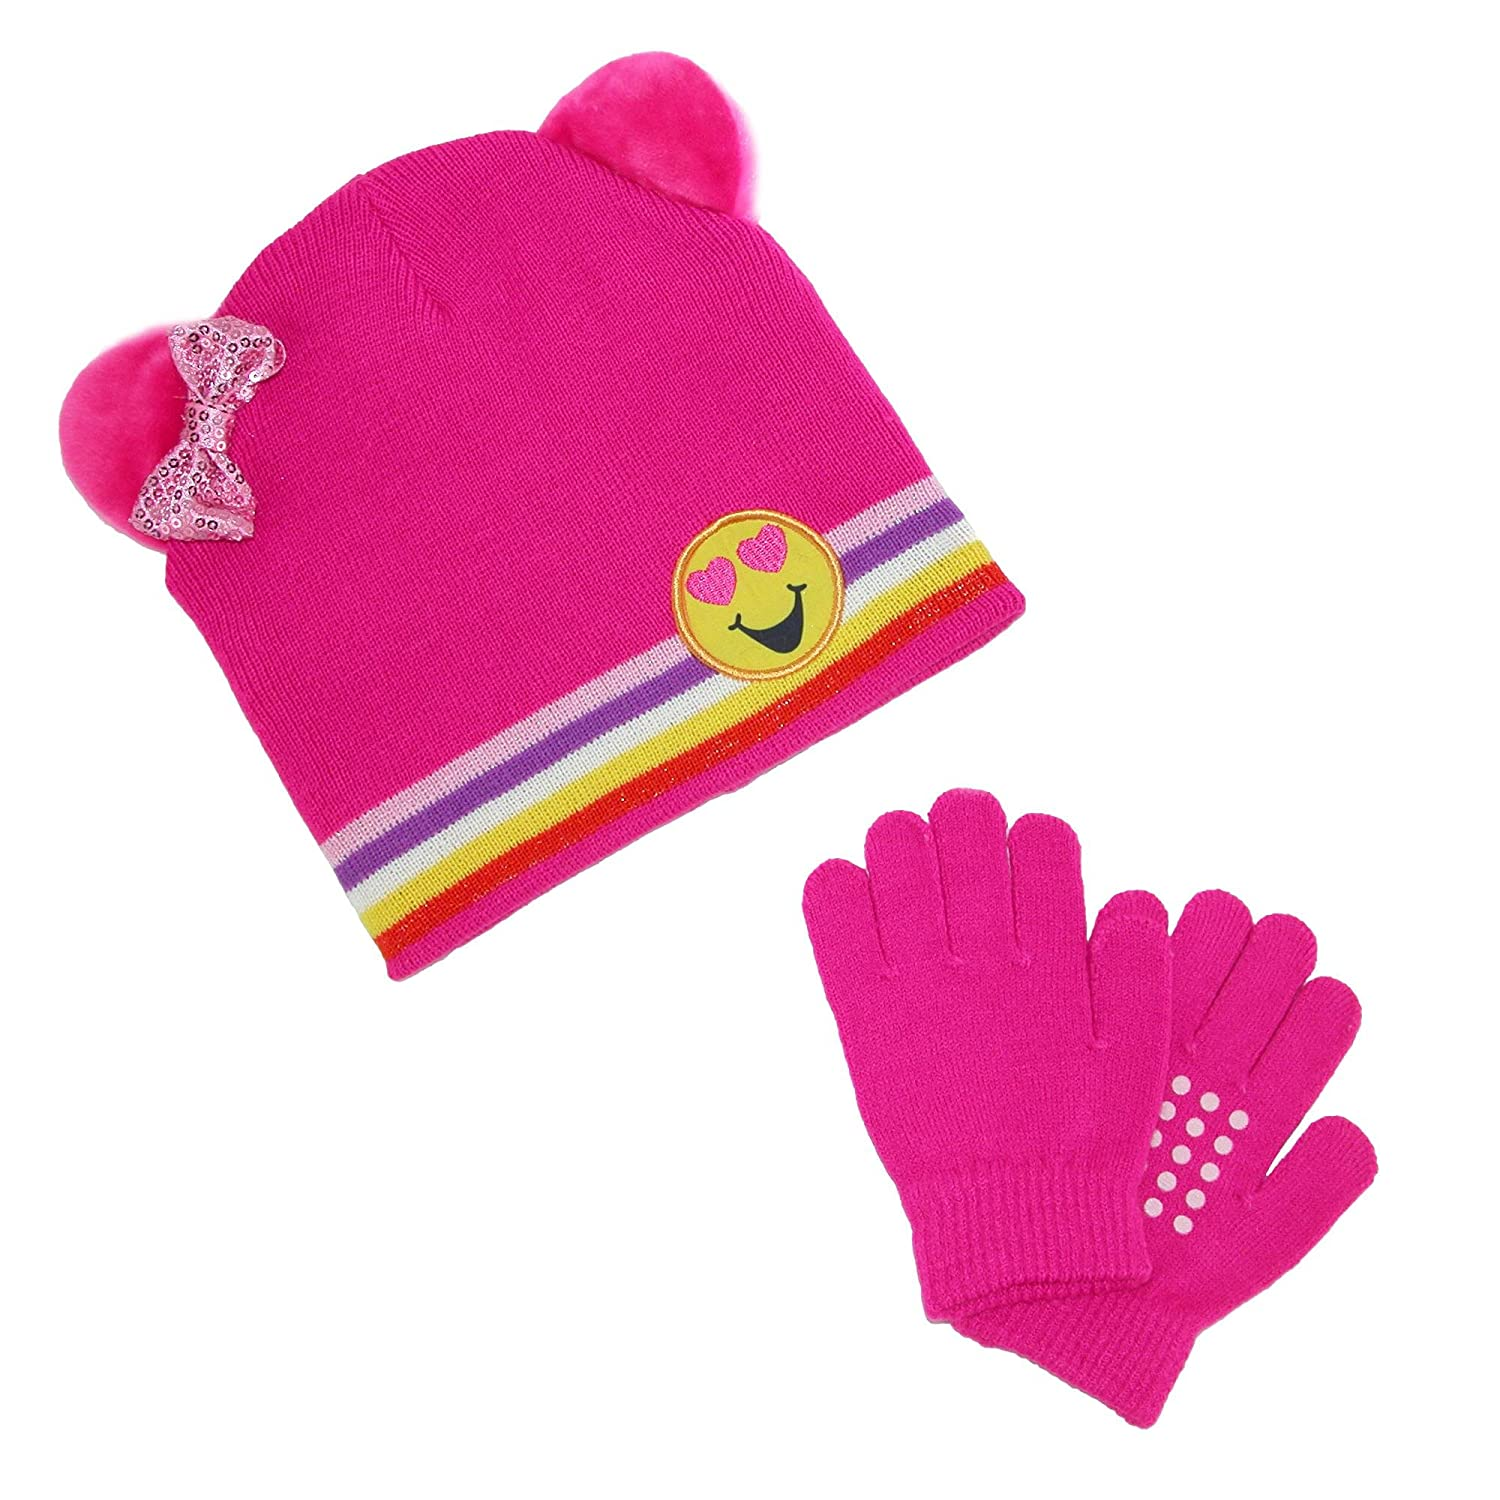 CTM® Girl's Emoji Hat with Grip Gloves Set, Pink GM-KG114-PNK